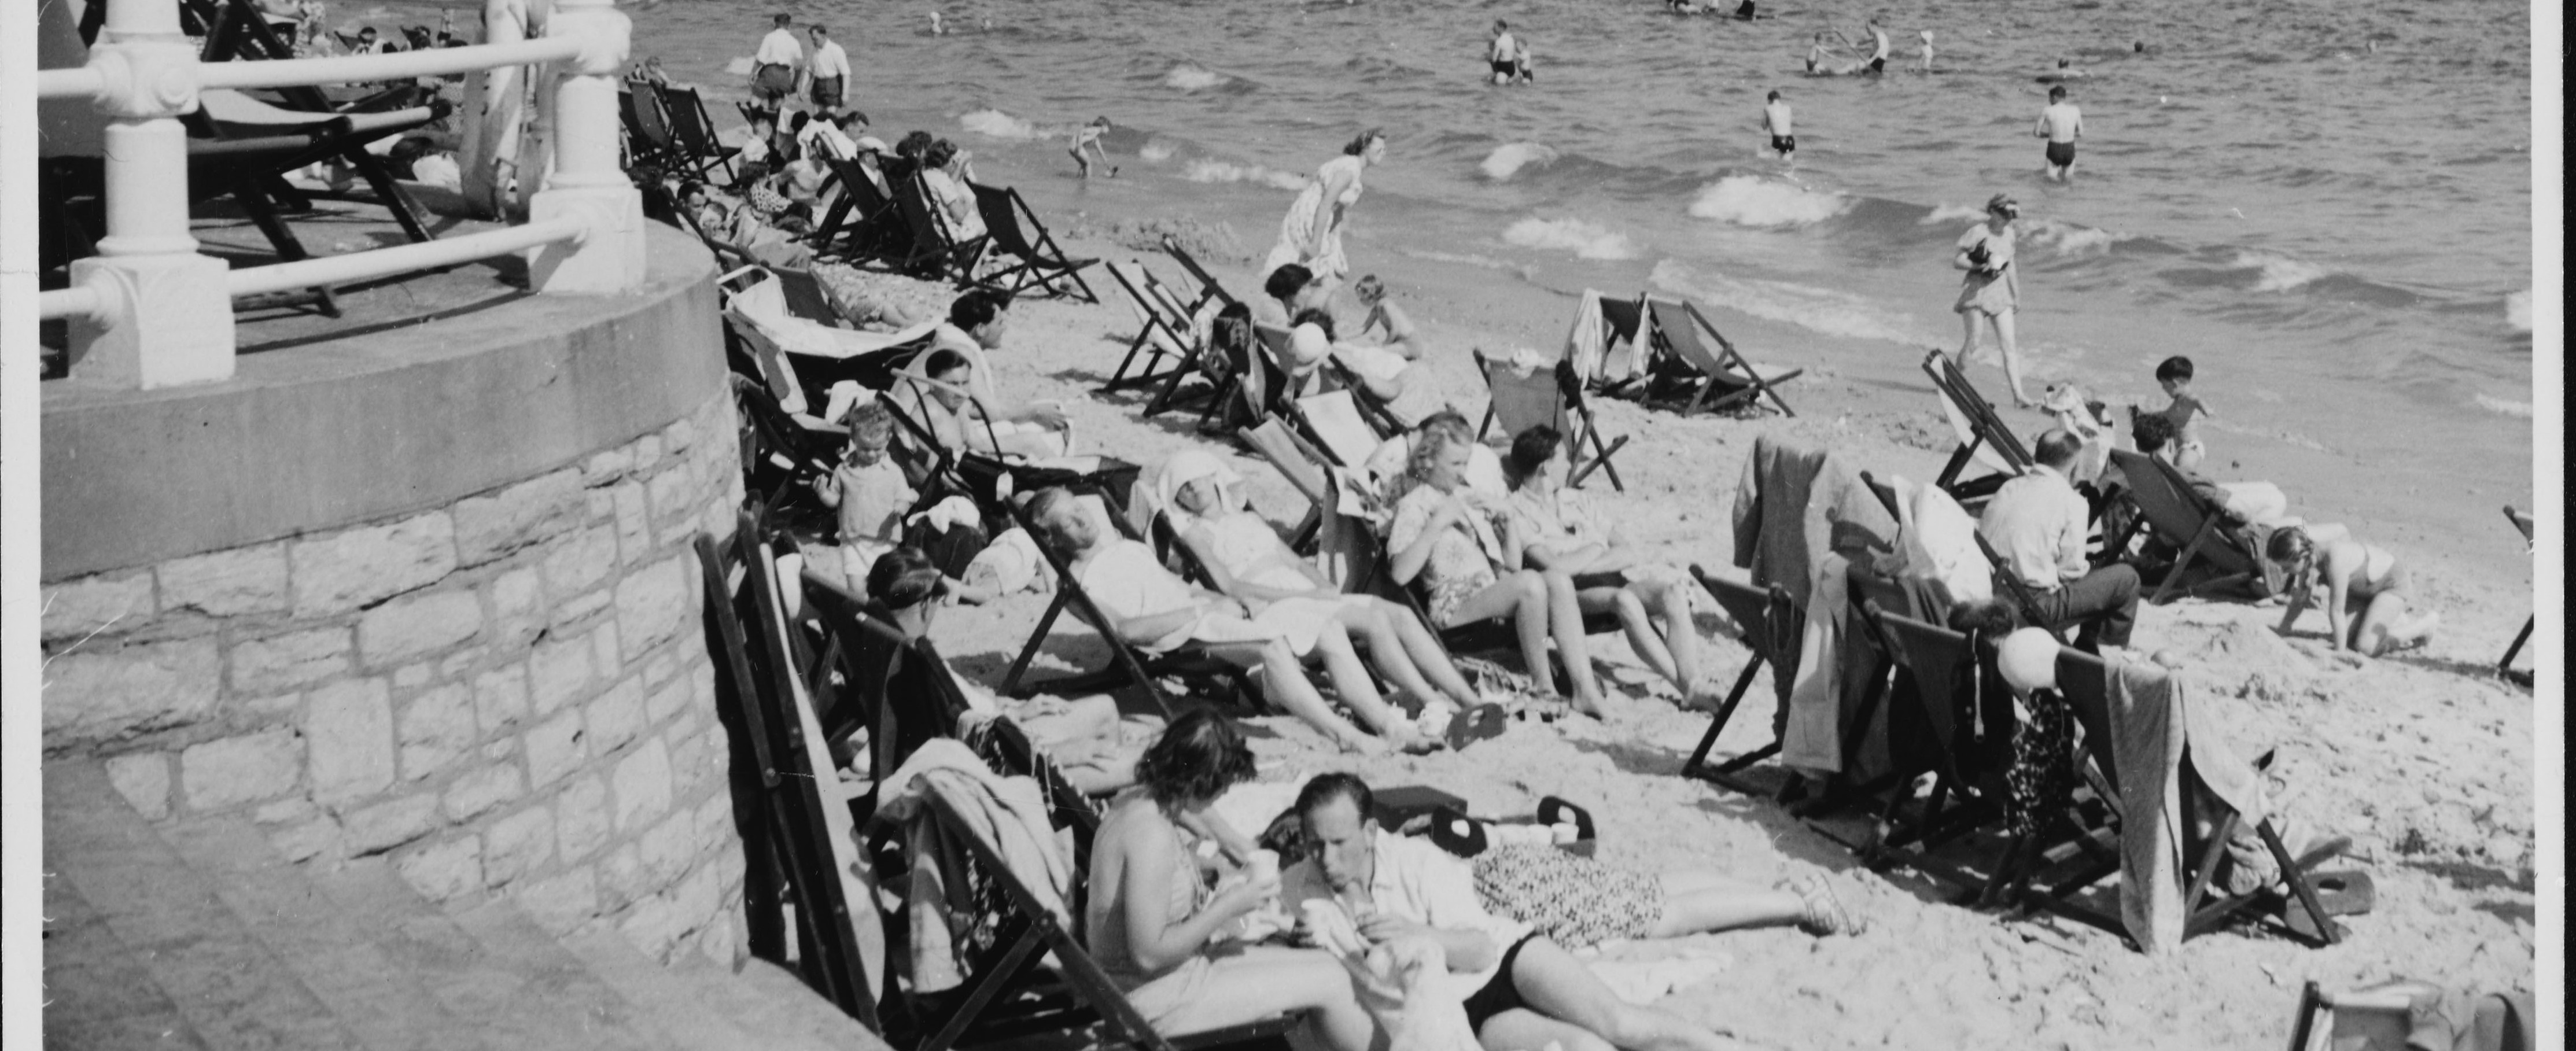 AA0GK7 Bournemouth Beach 1950s